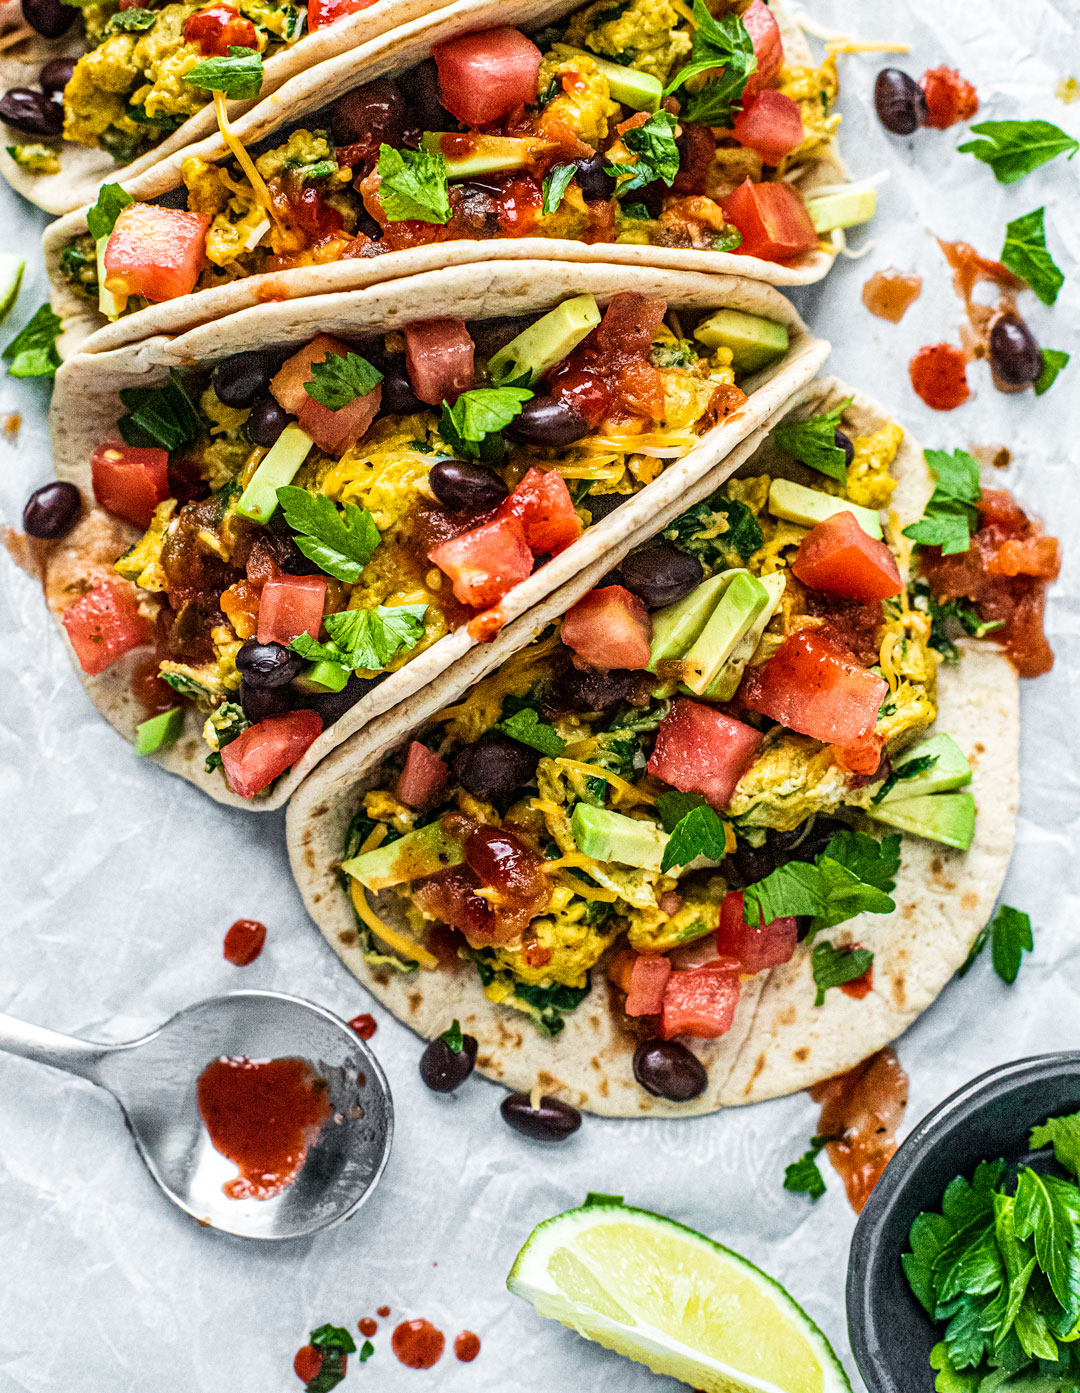 Platter of breakfast tacos stuffed with scrambled eggs, black beans, tomatoes, and drizzled with hot sauce.